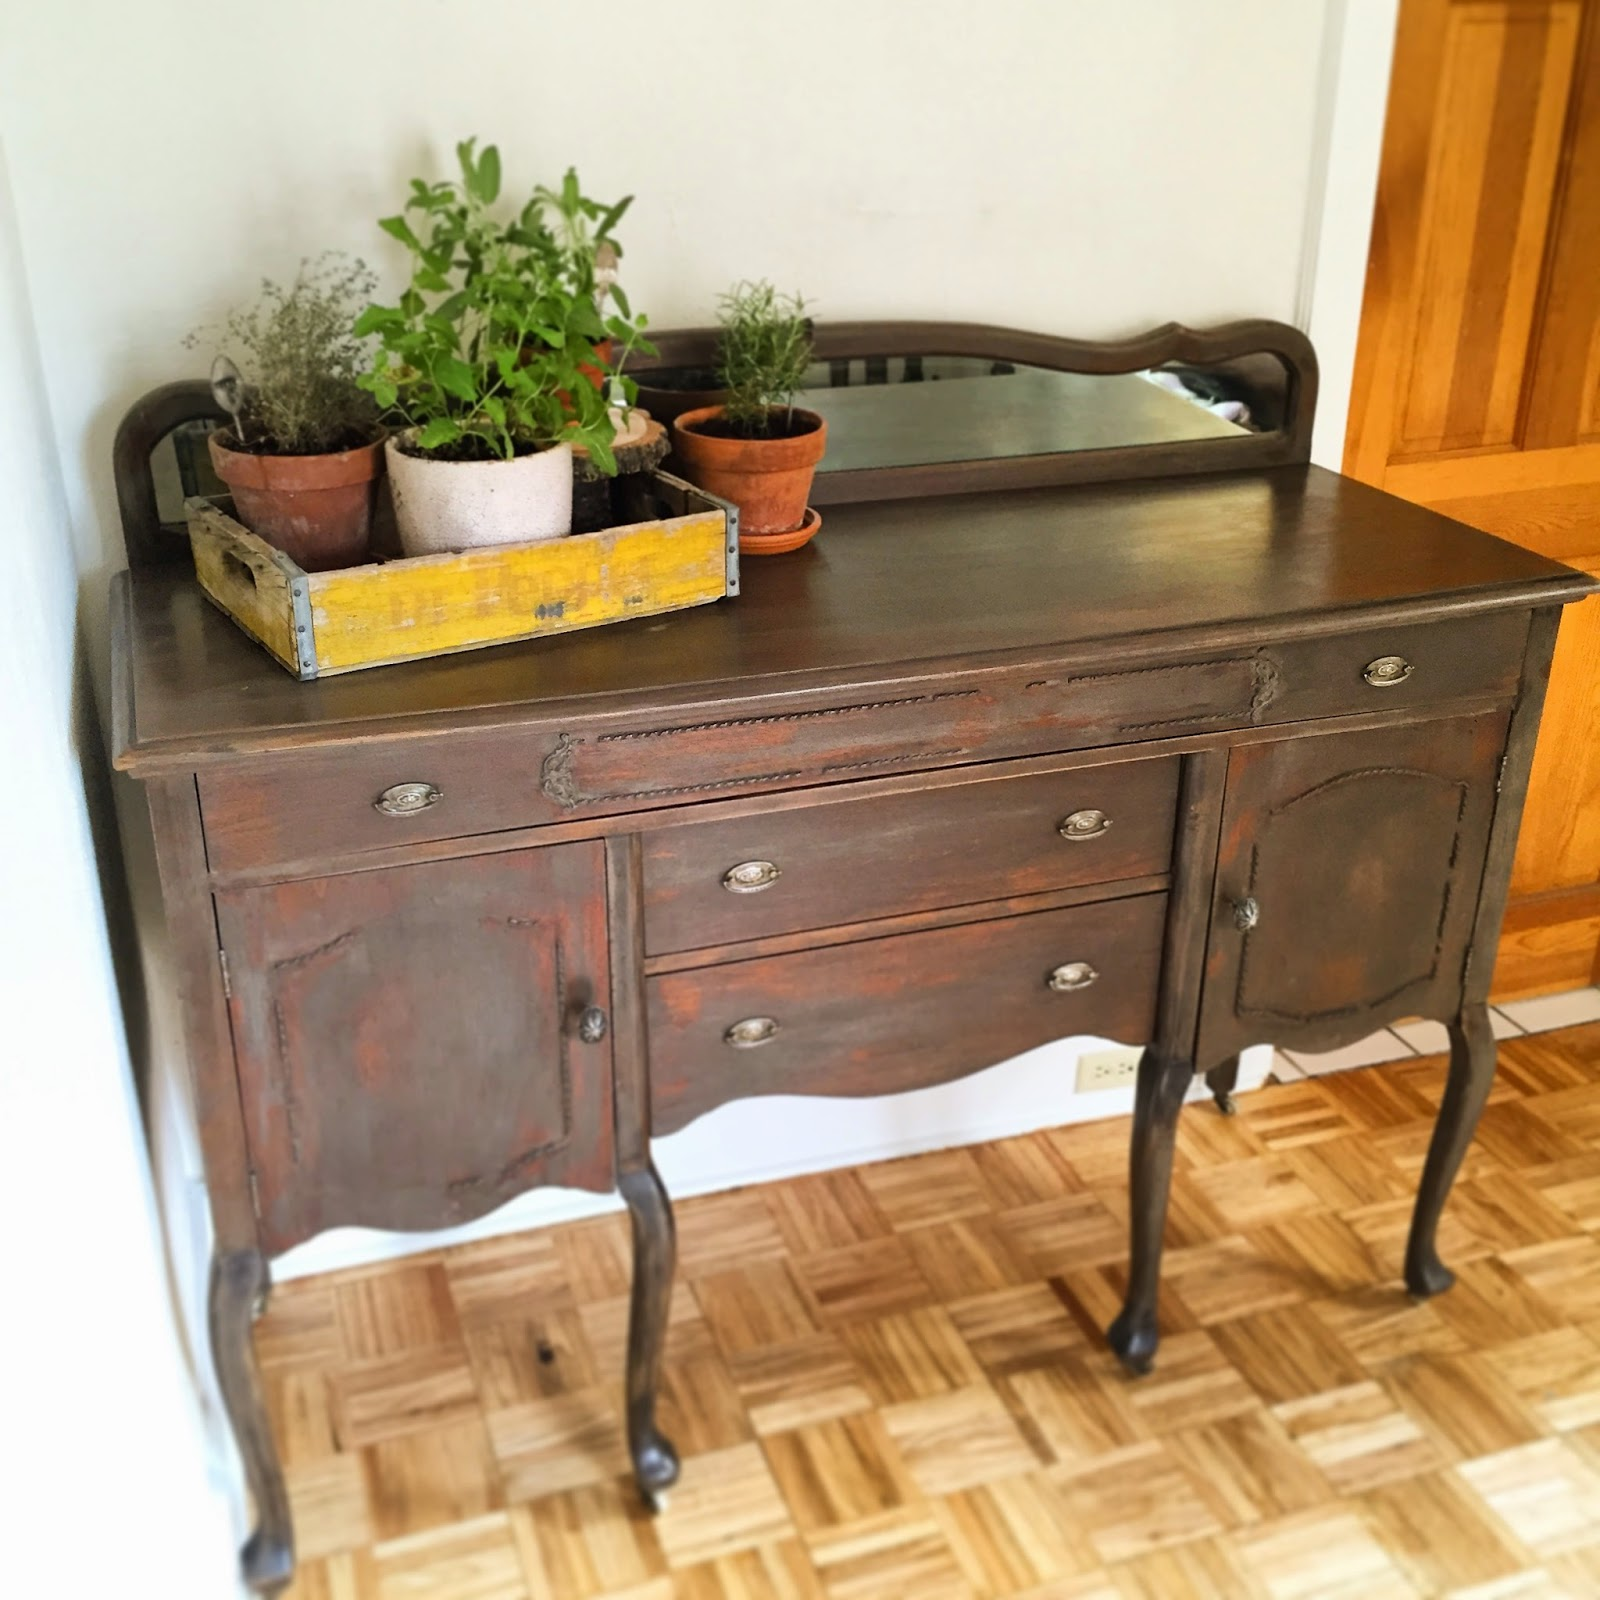 Antique buffet table furniture - Grand Grey Distressed Antique Wooden Buffet On Caster Wheels This Piece Has Such Hidden Charm From The Mini Mirror On The Top Back To The Long Low Top